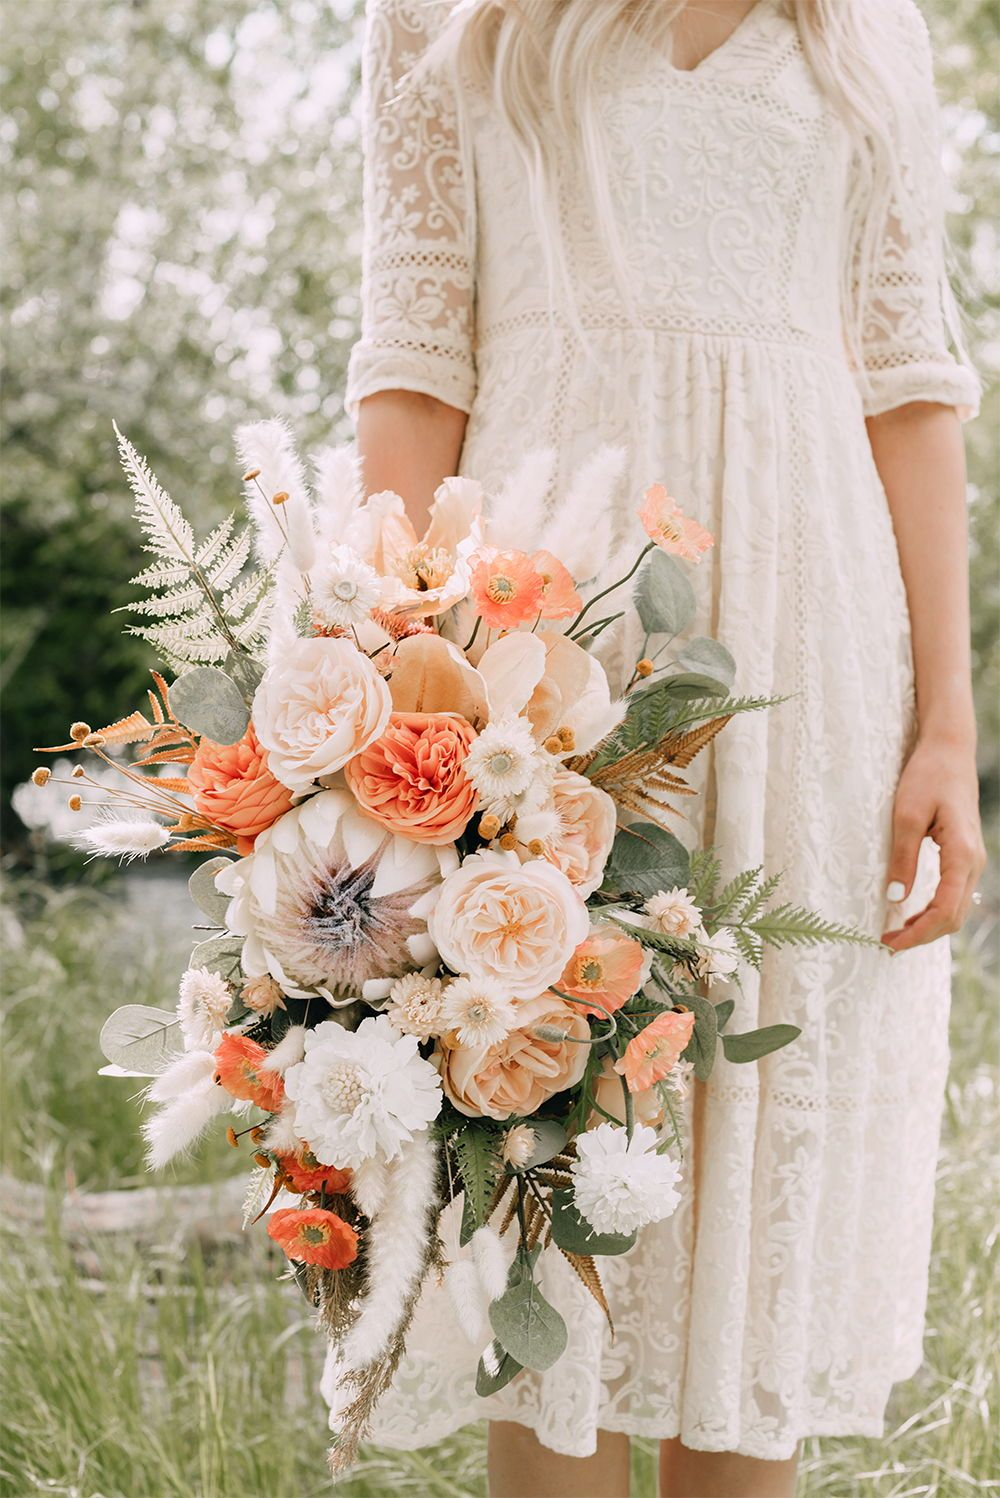 July Newsletter Summer Colors, Country Weddings, & Dried